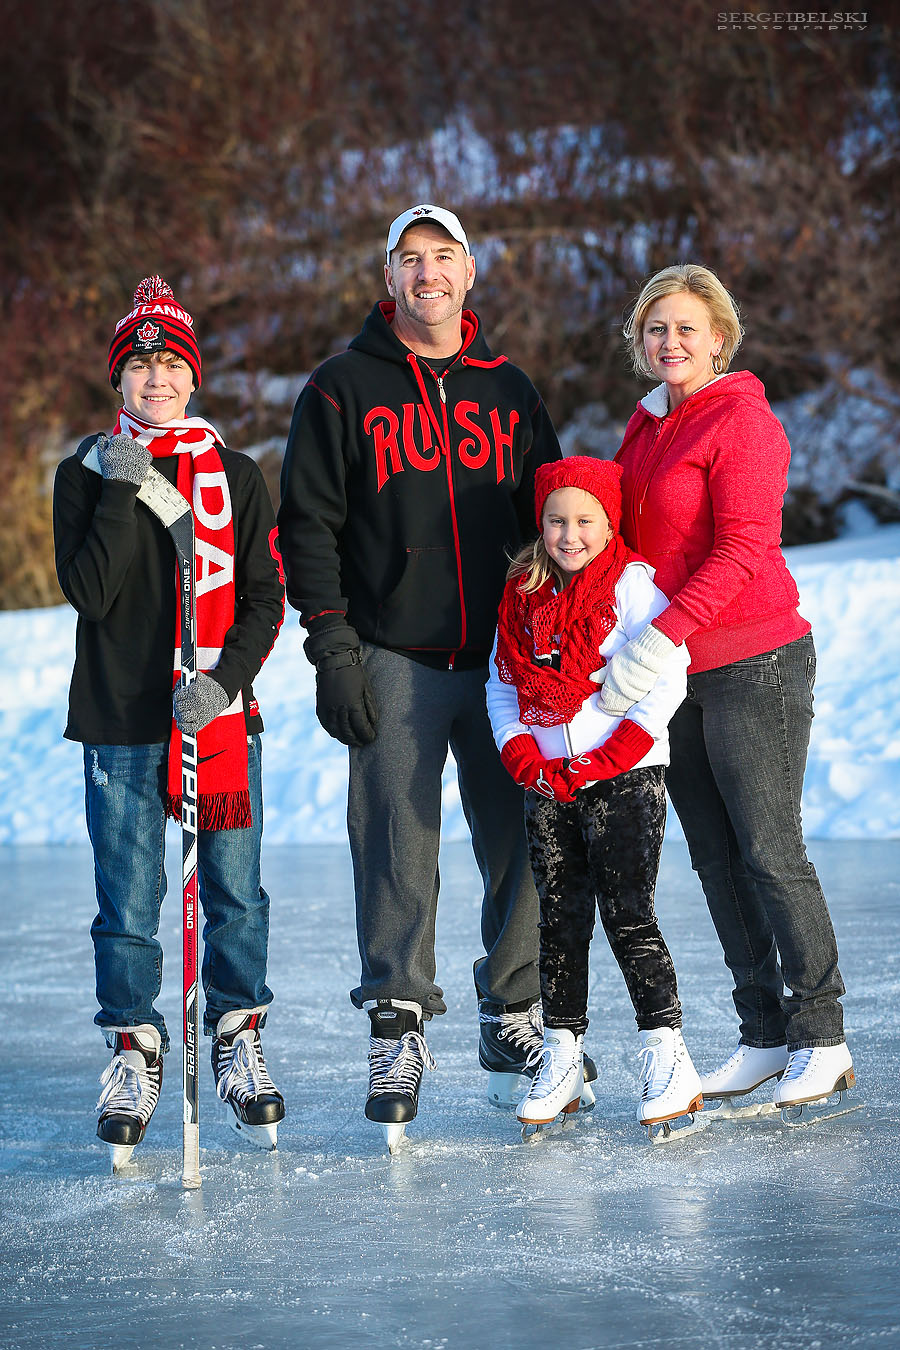 city of airdrie family photographer sergei belski photo